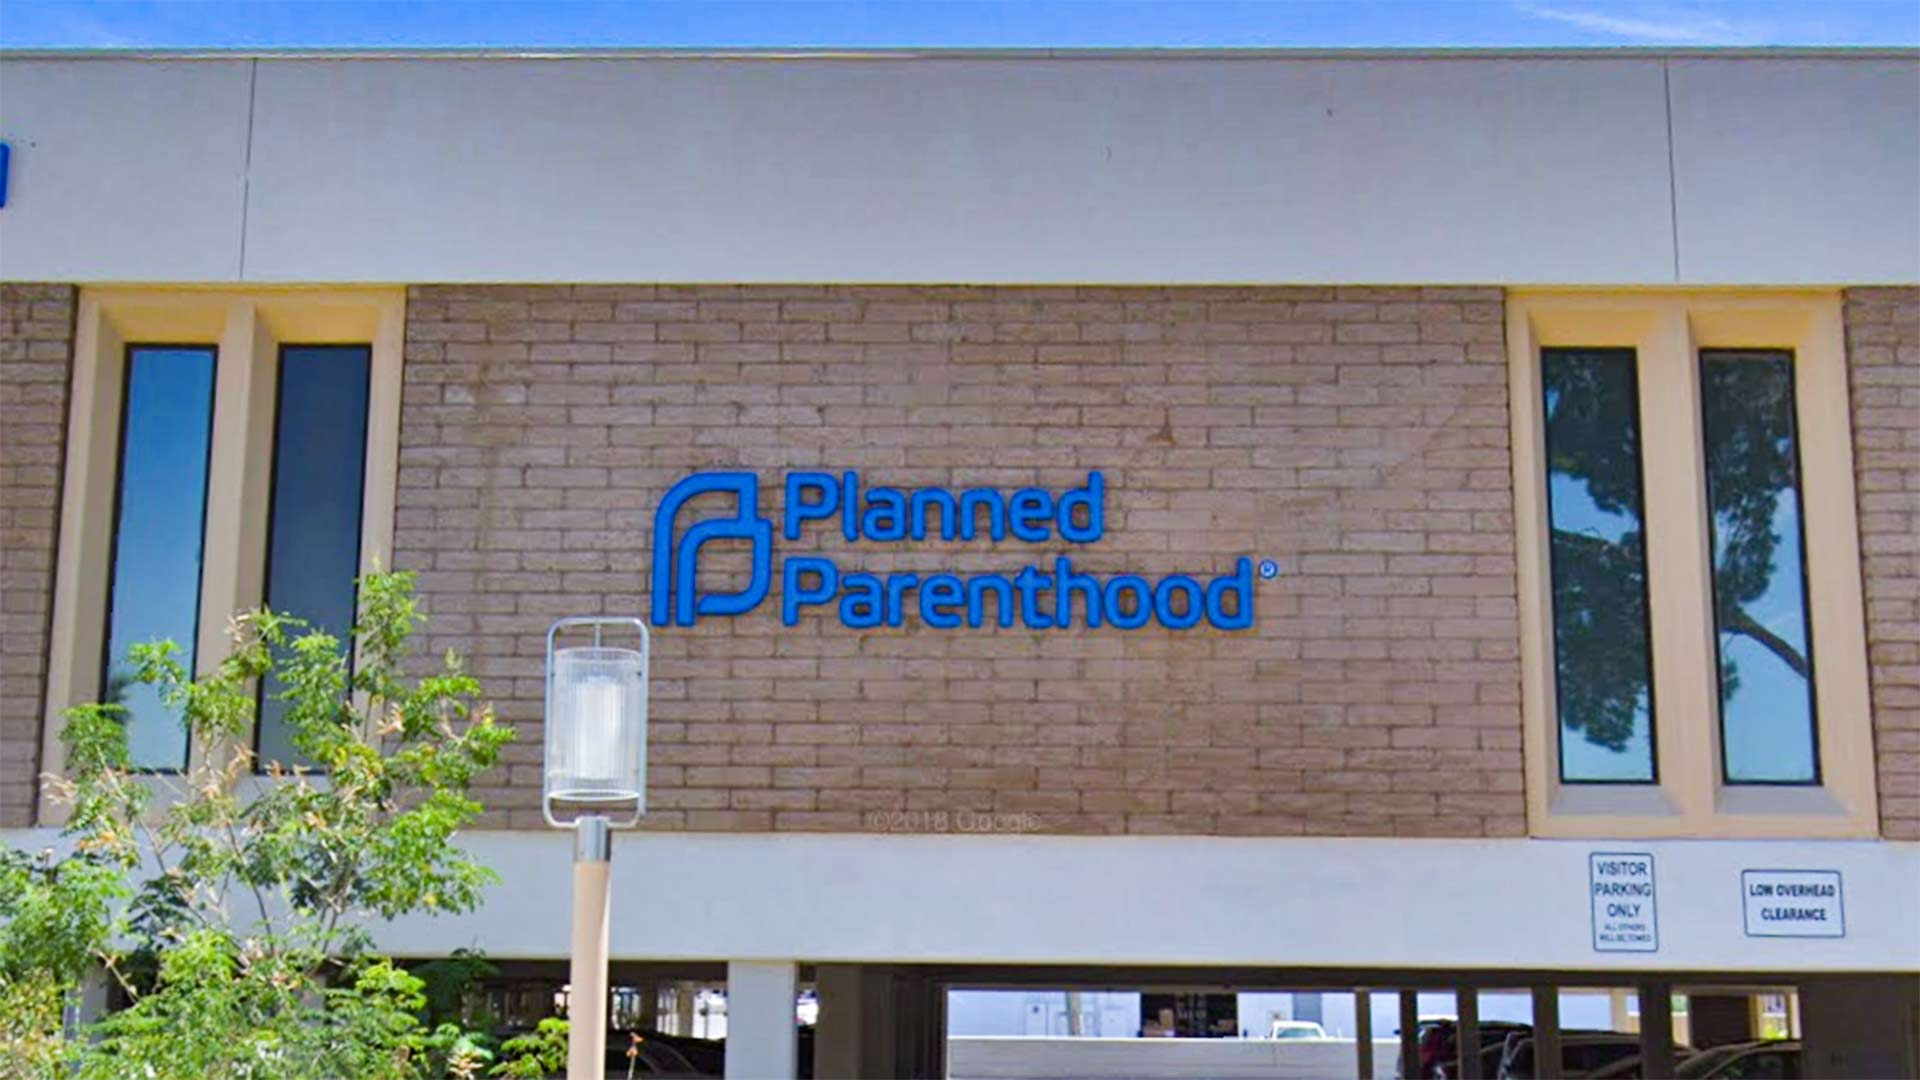 Google Street View image of a Planned Parenthood location in Phoenix.